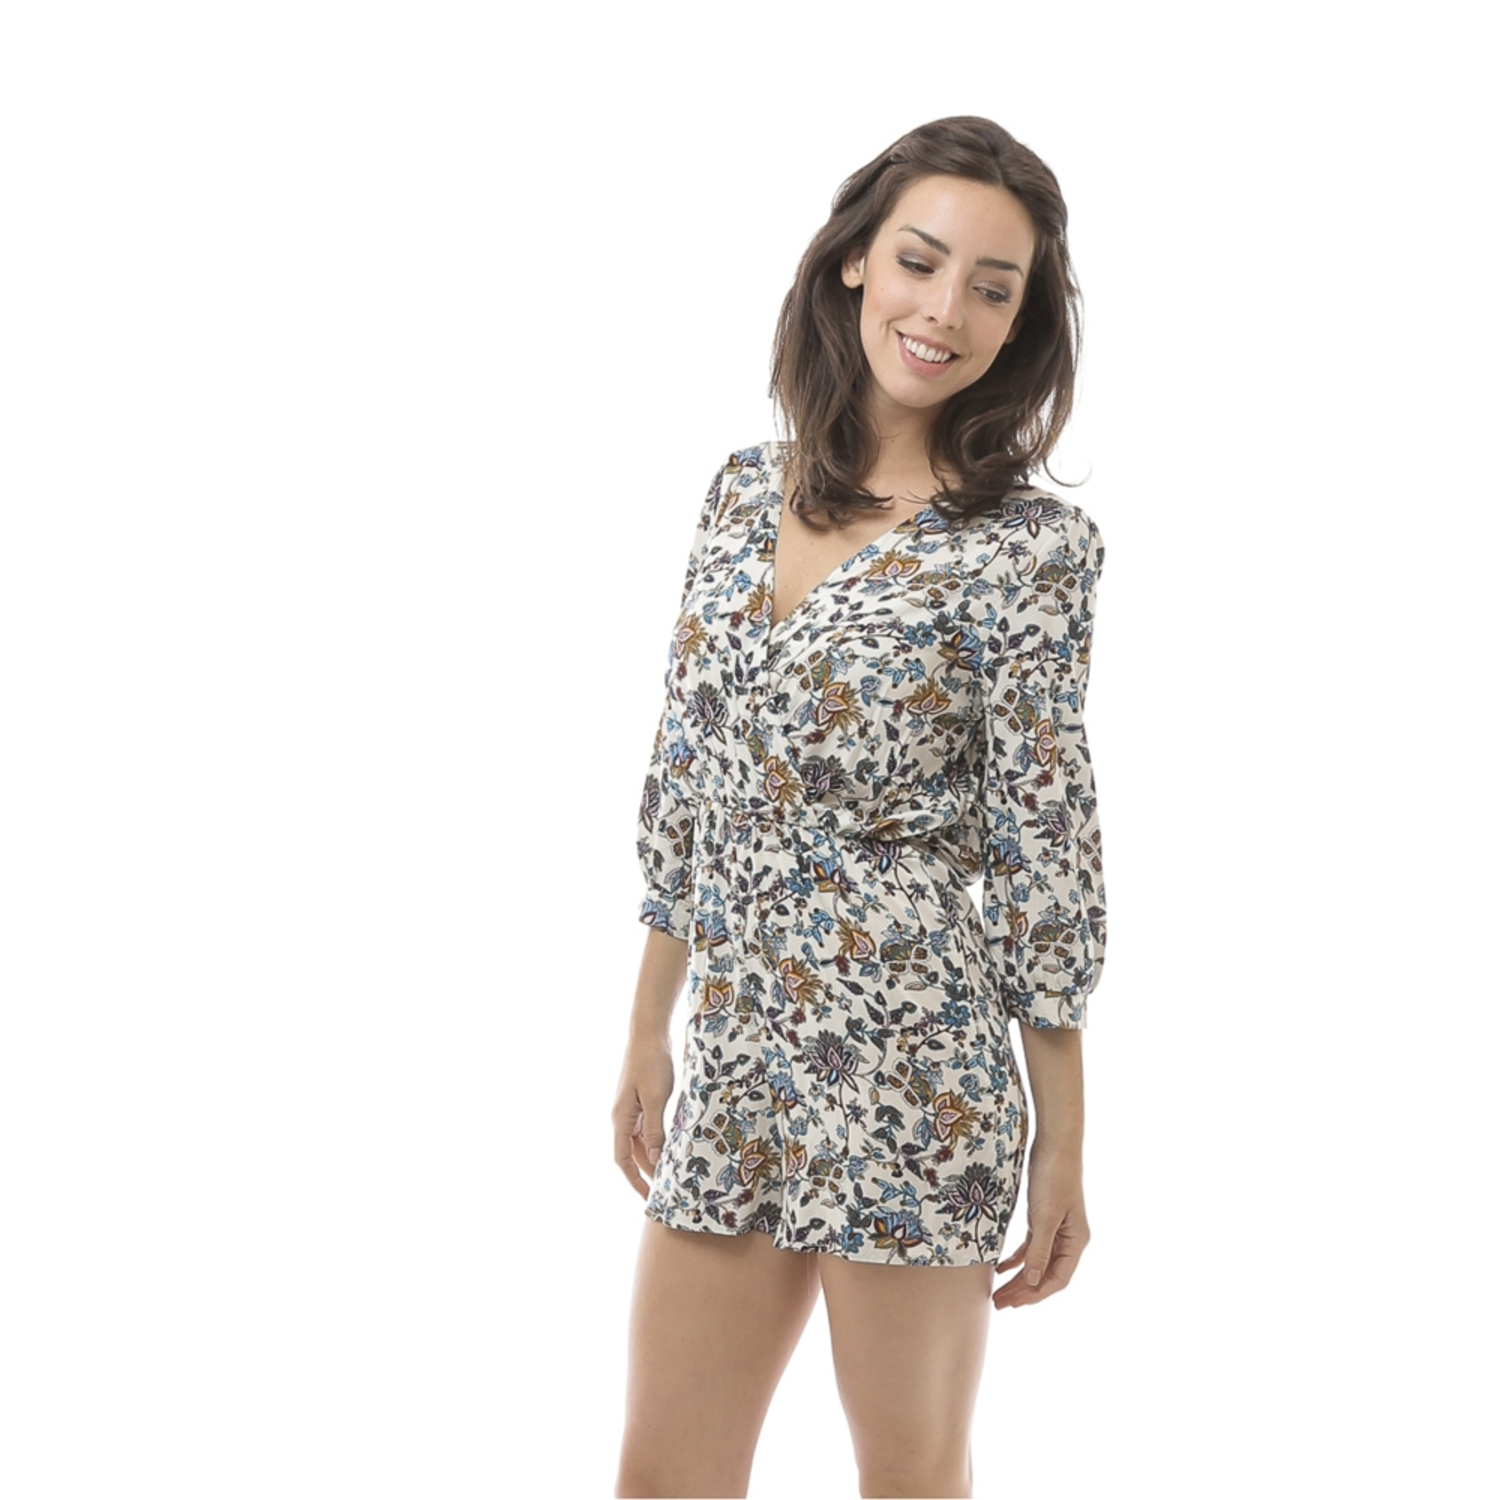 Women 3/4 Sleeve Floral Print Short Romper Size Medium (M) - Colorful